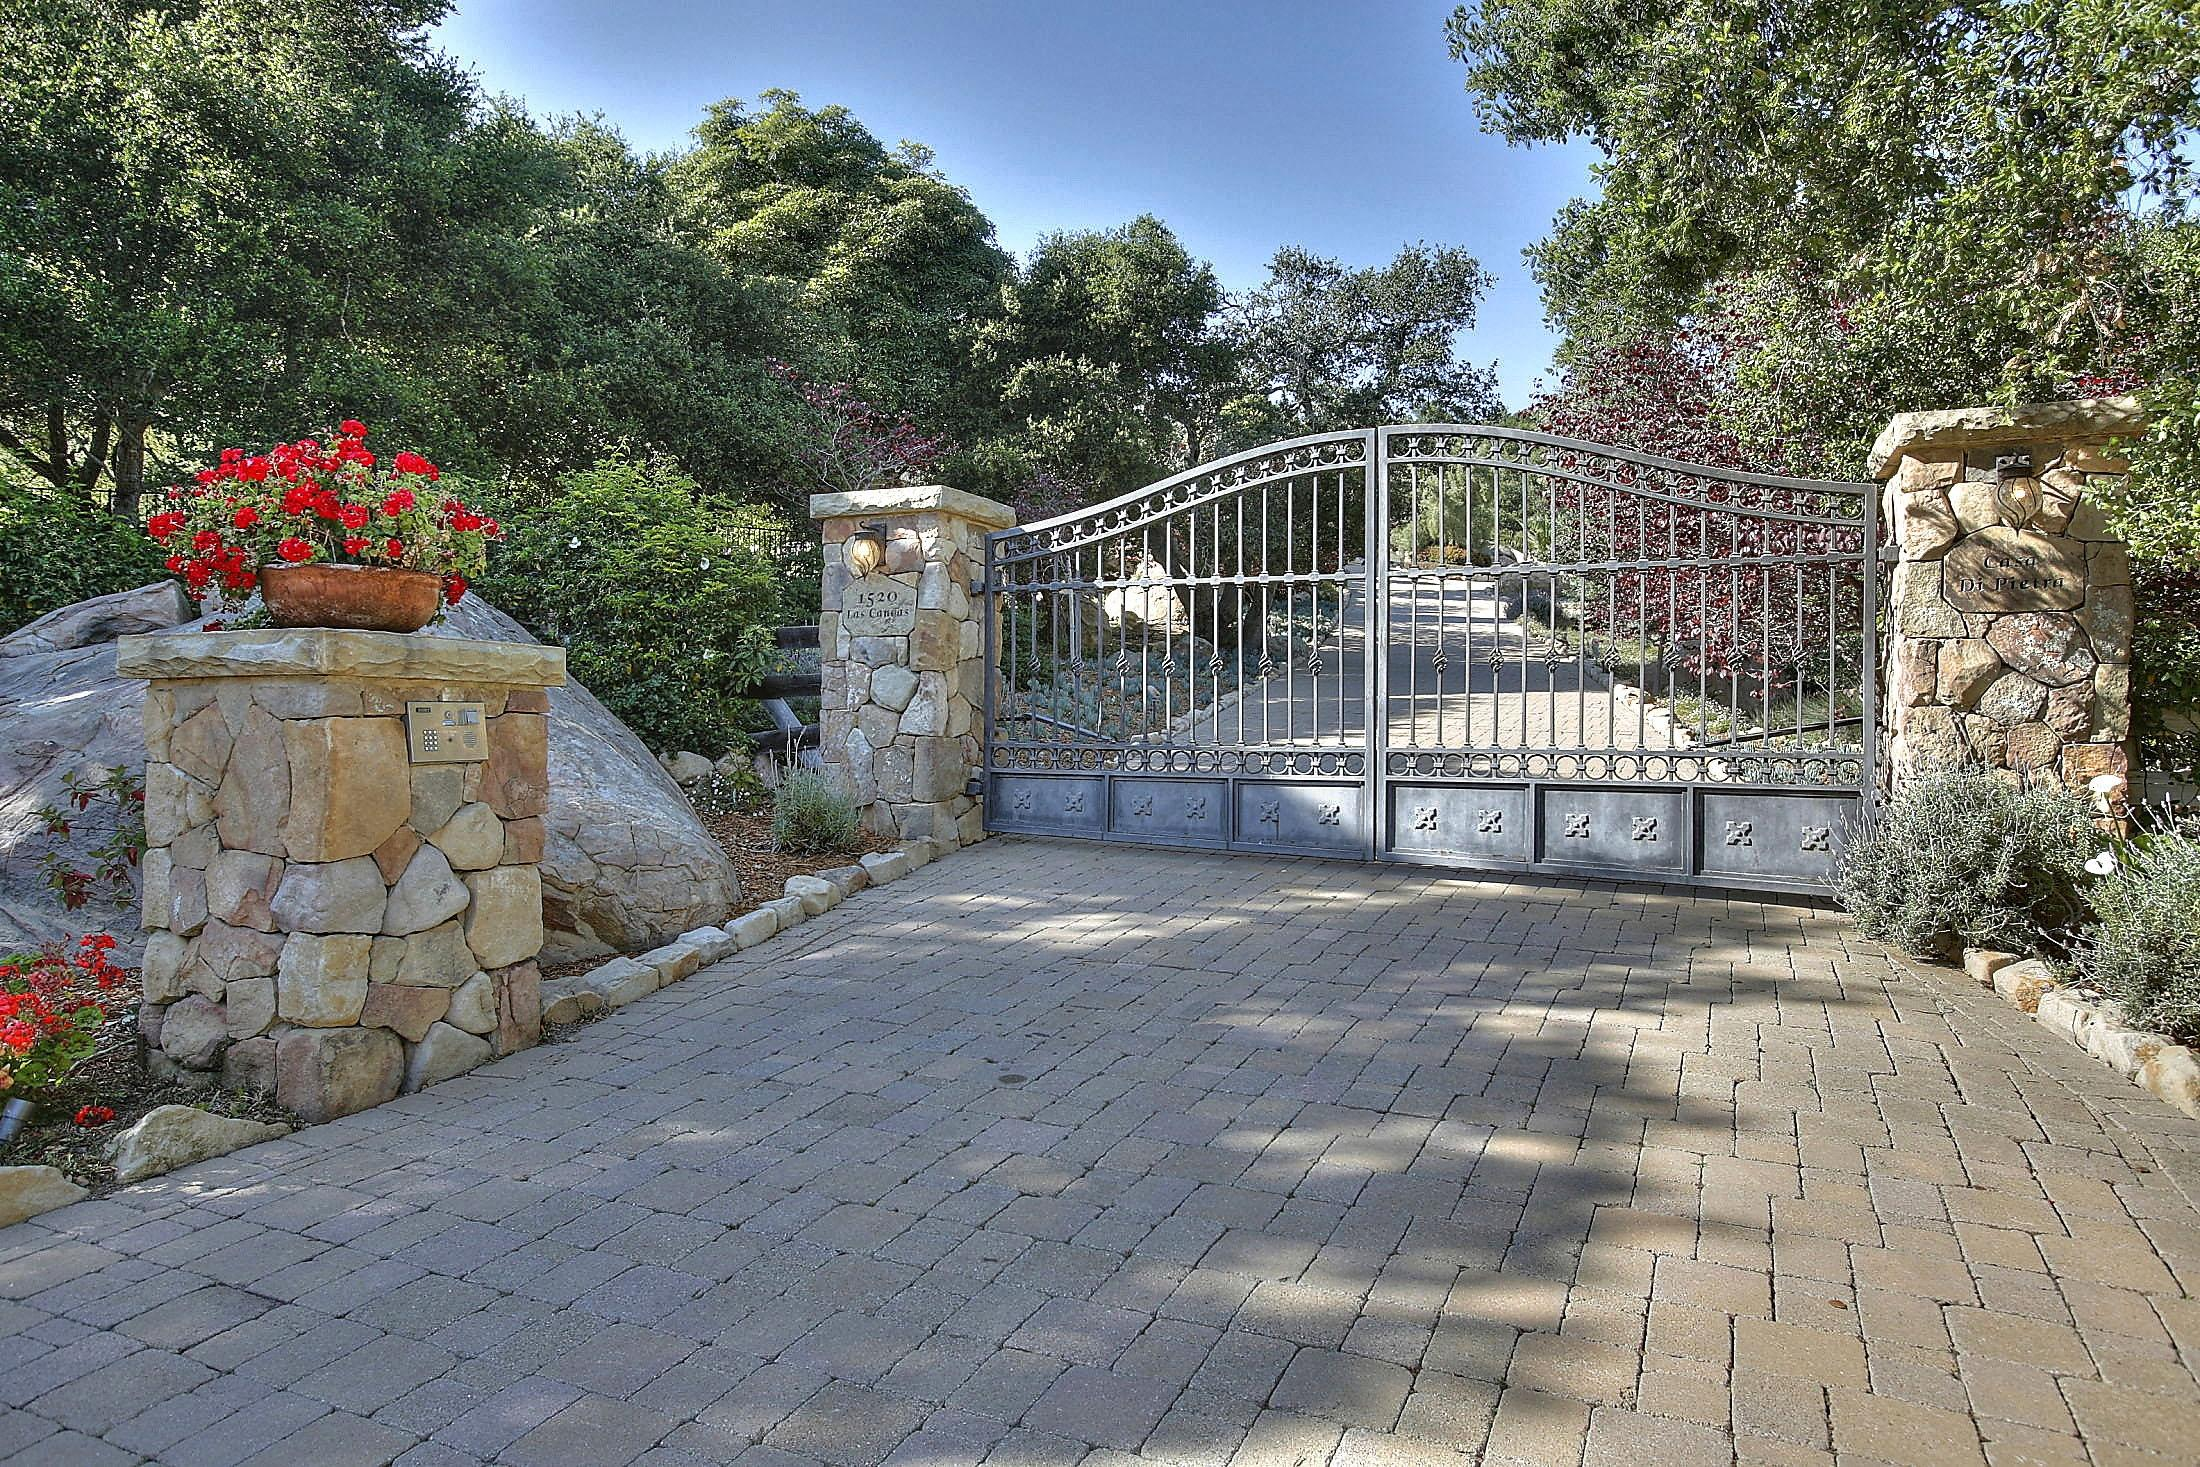 Property photo for 1520 Las Canoas Rd Santa Barbara, California 93105 - 13-1483